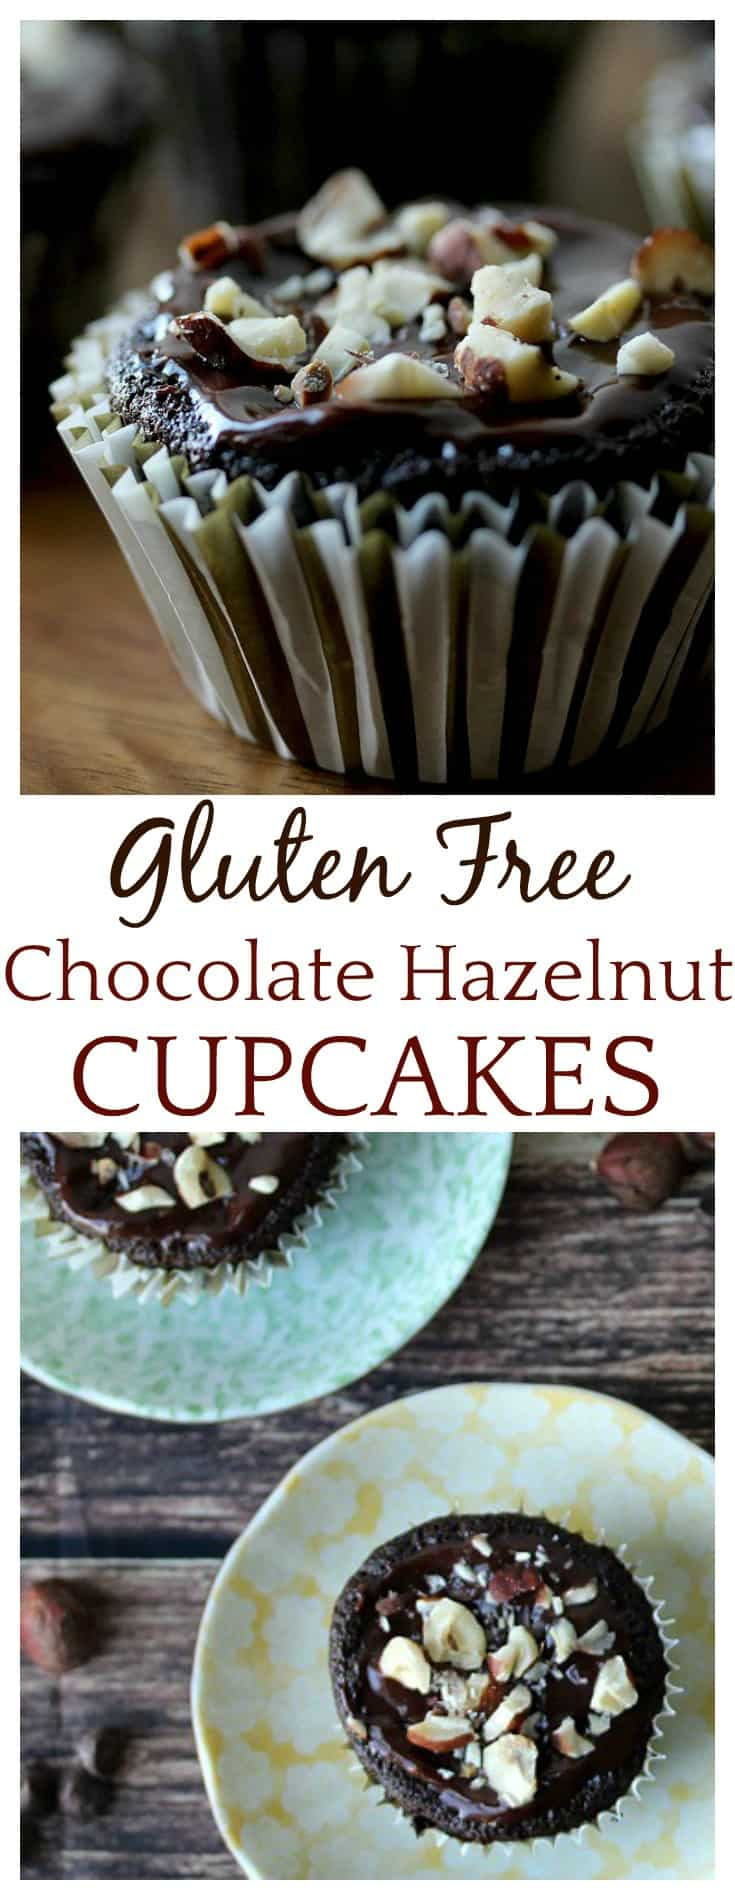 These Gluten Free Chocolate Hazelnut Cupcakes are so moist and delicious! Everyone will love them and no one will even know they are eating gluten free cupcakes! Yum!